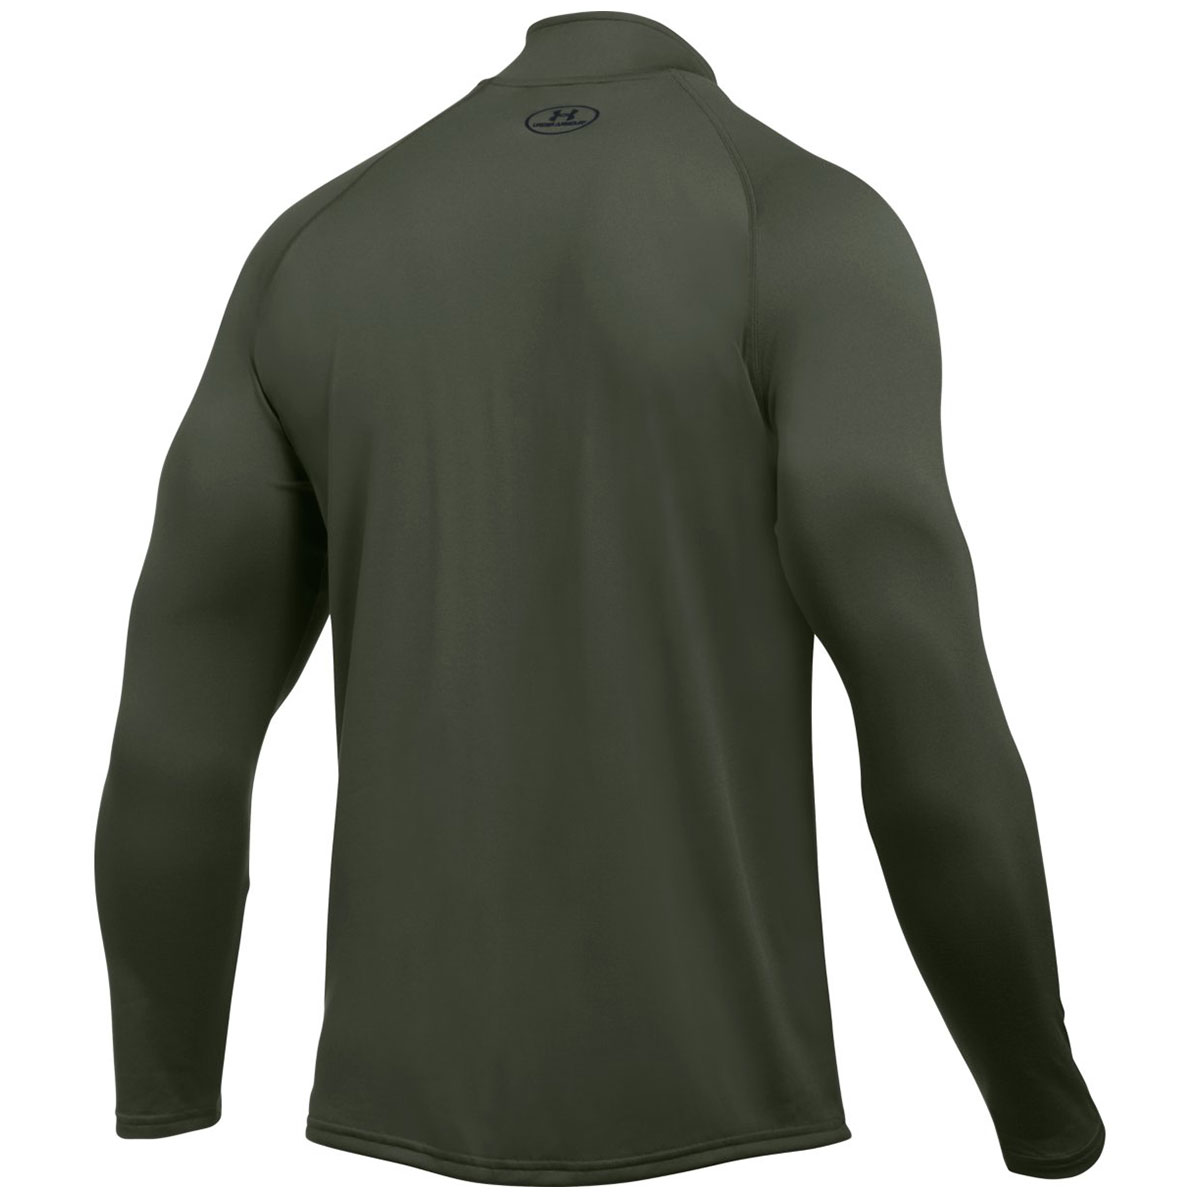 Under-Armour-Mens-UA-Tech-1-4-Zip-Long-Sleeve-Top-Workout-Layer-27-OFF-RRP thumbnail 48